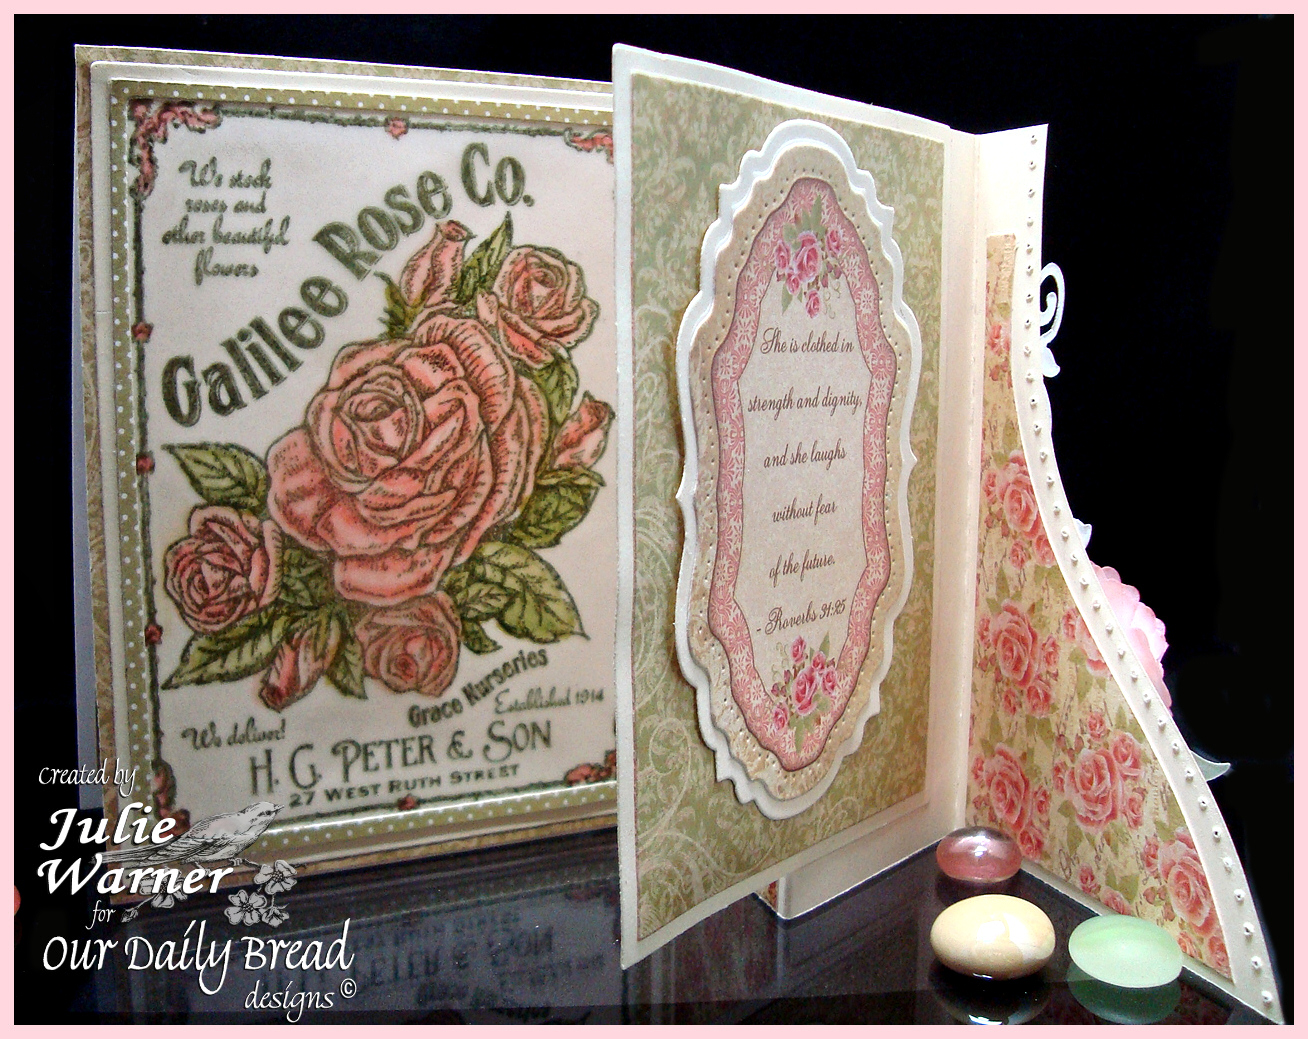 Stamps - Our Daily Bread Designs Galilee Rose Co., Rose,  ODBD Bushing Rose Paper Collection, ODBD Custom Zinnia & Leaves Die, ODBD Custom Fancy Foliage Die, ODBD Custom Vintage Flourish Pattern Die